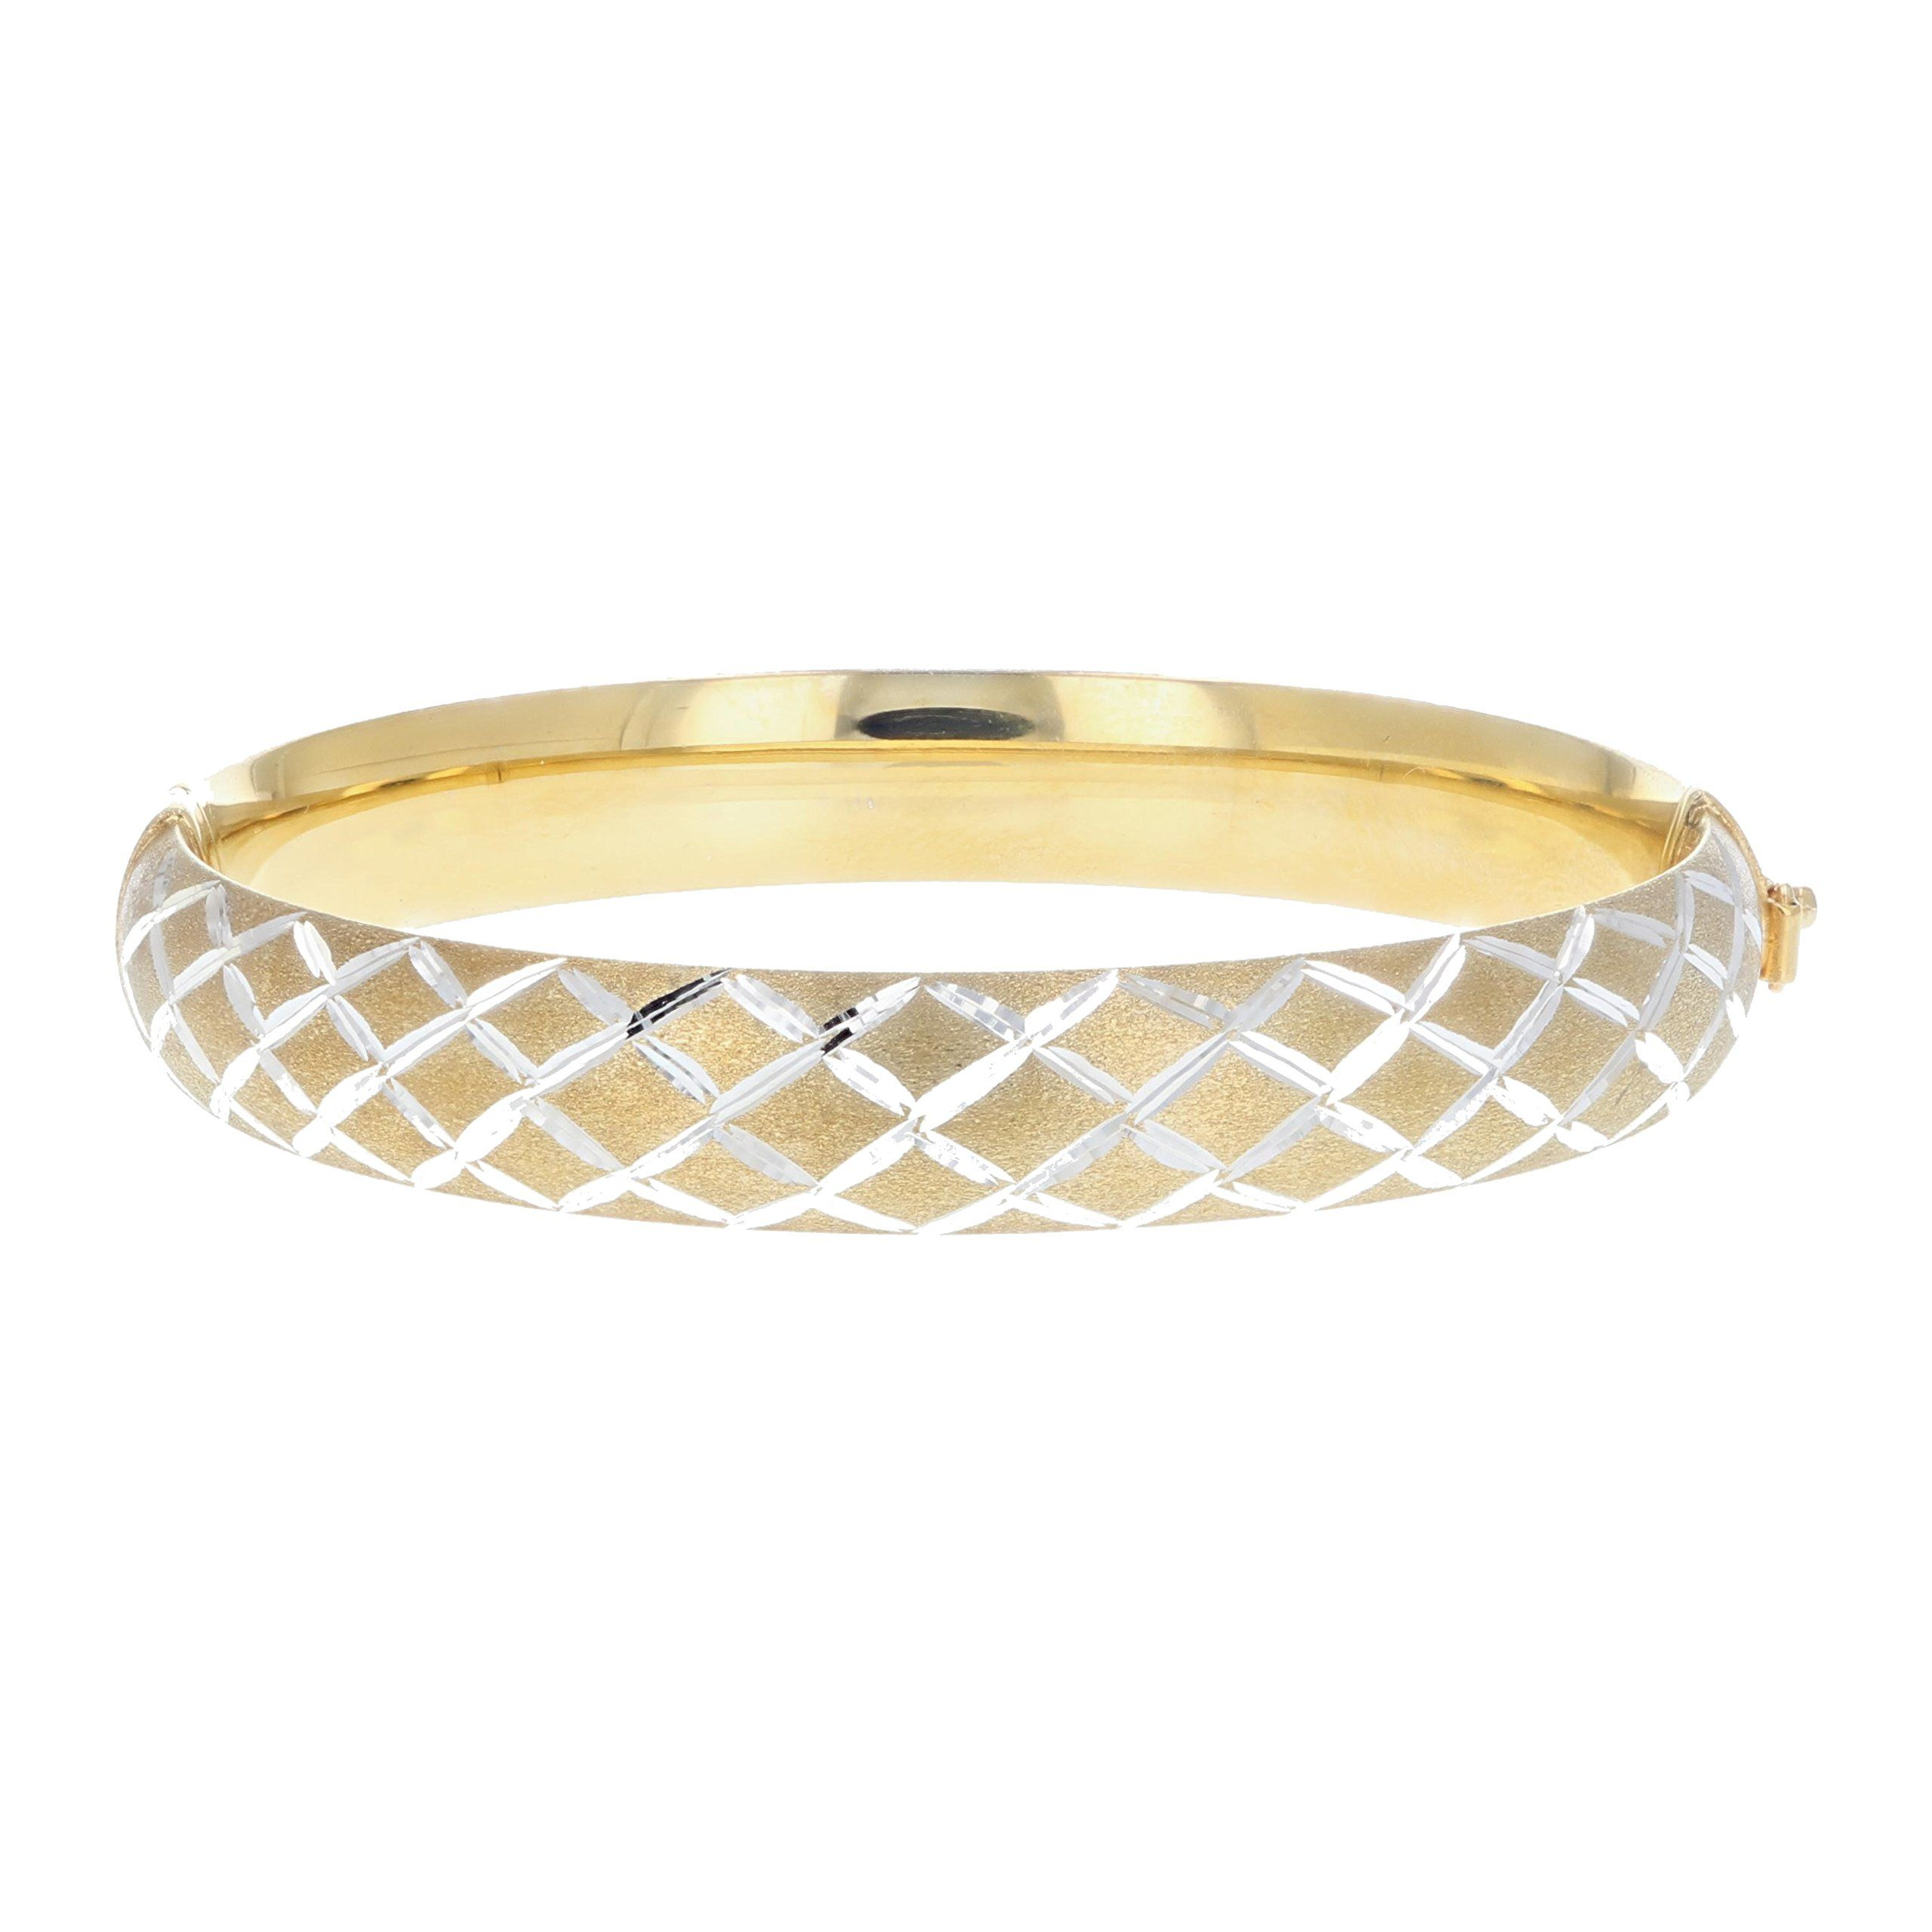 sterling asp p with mesh gold bracelets and bracelet yellow plated flexible silver bangles jaz bangle j charm heart